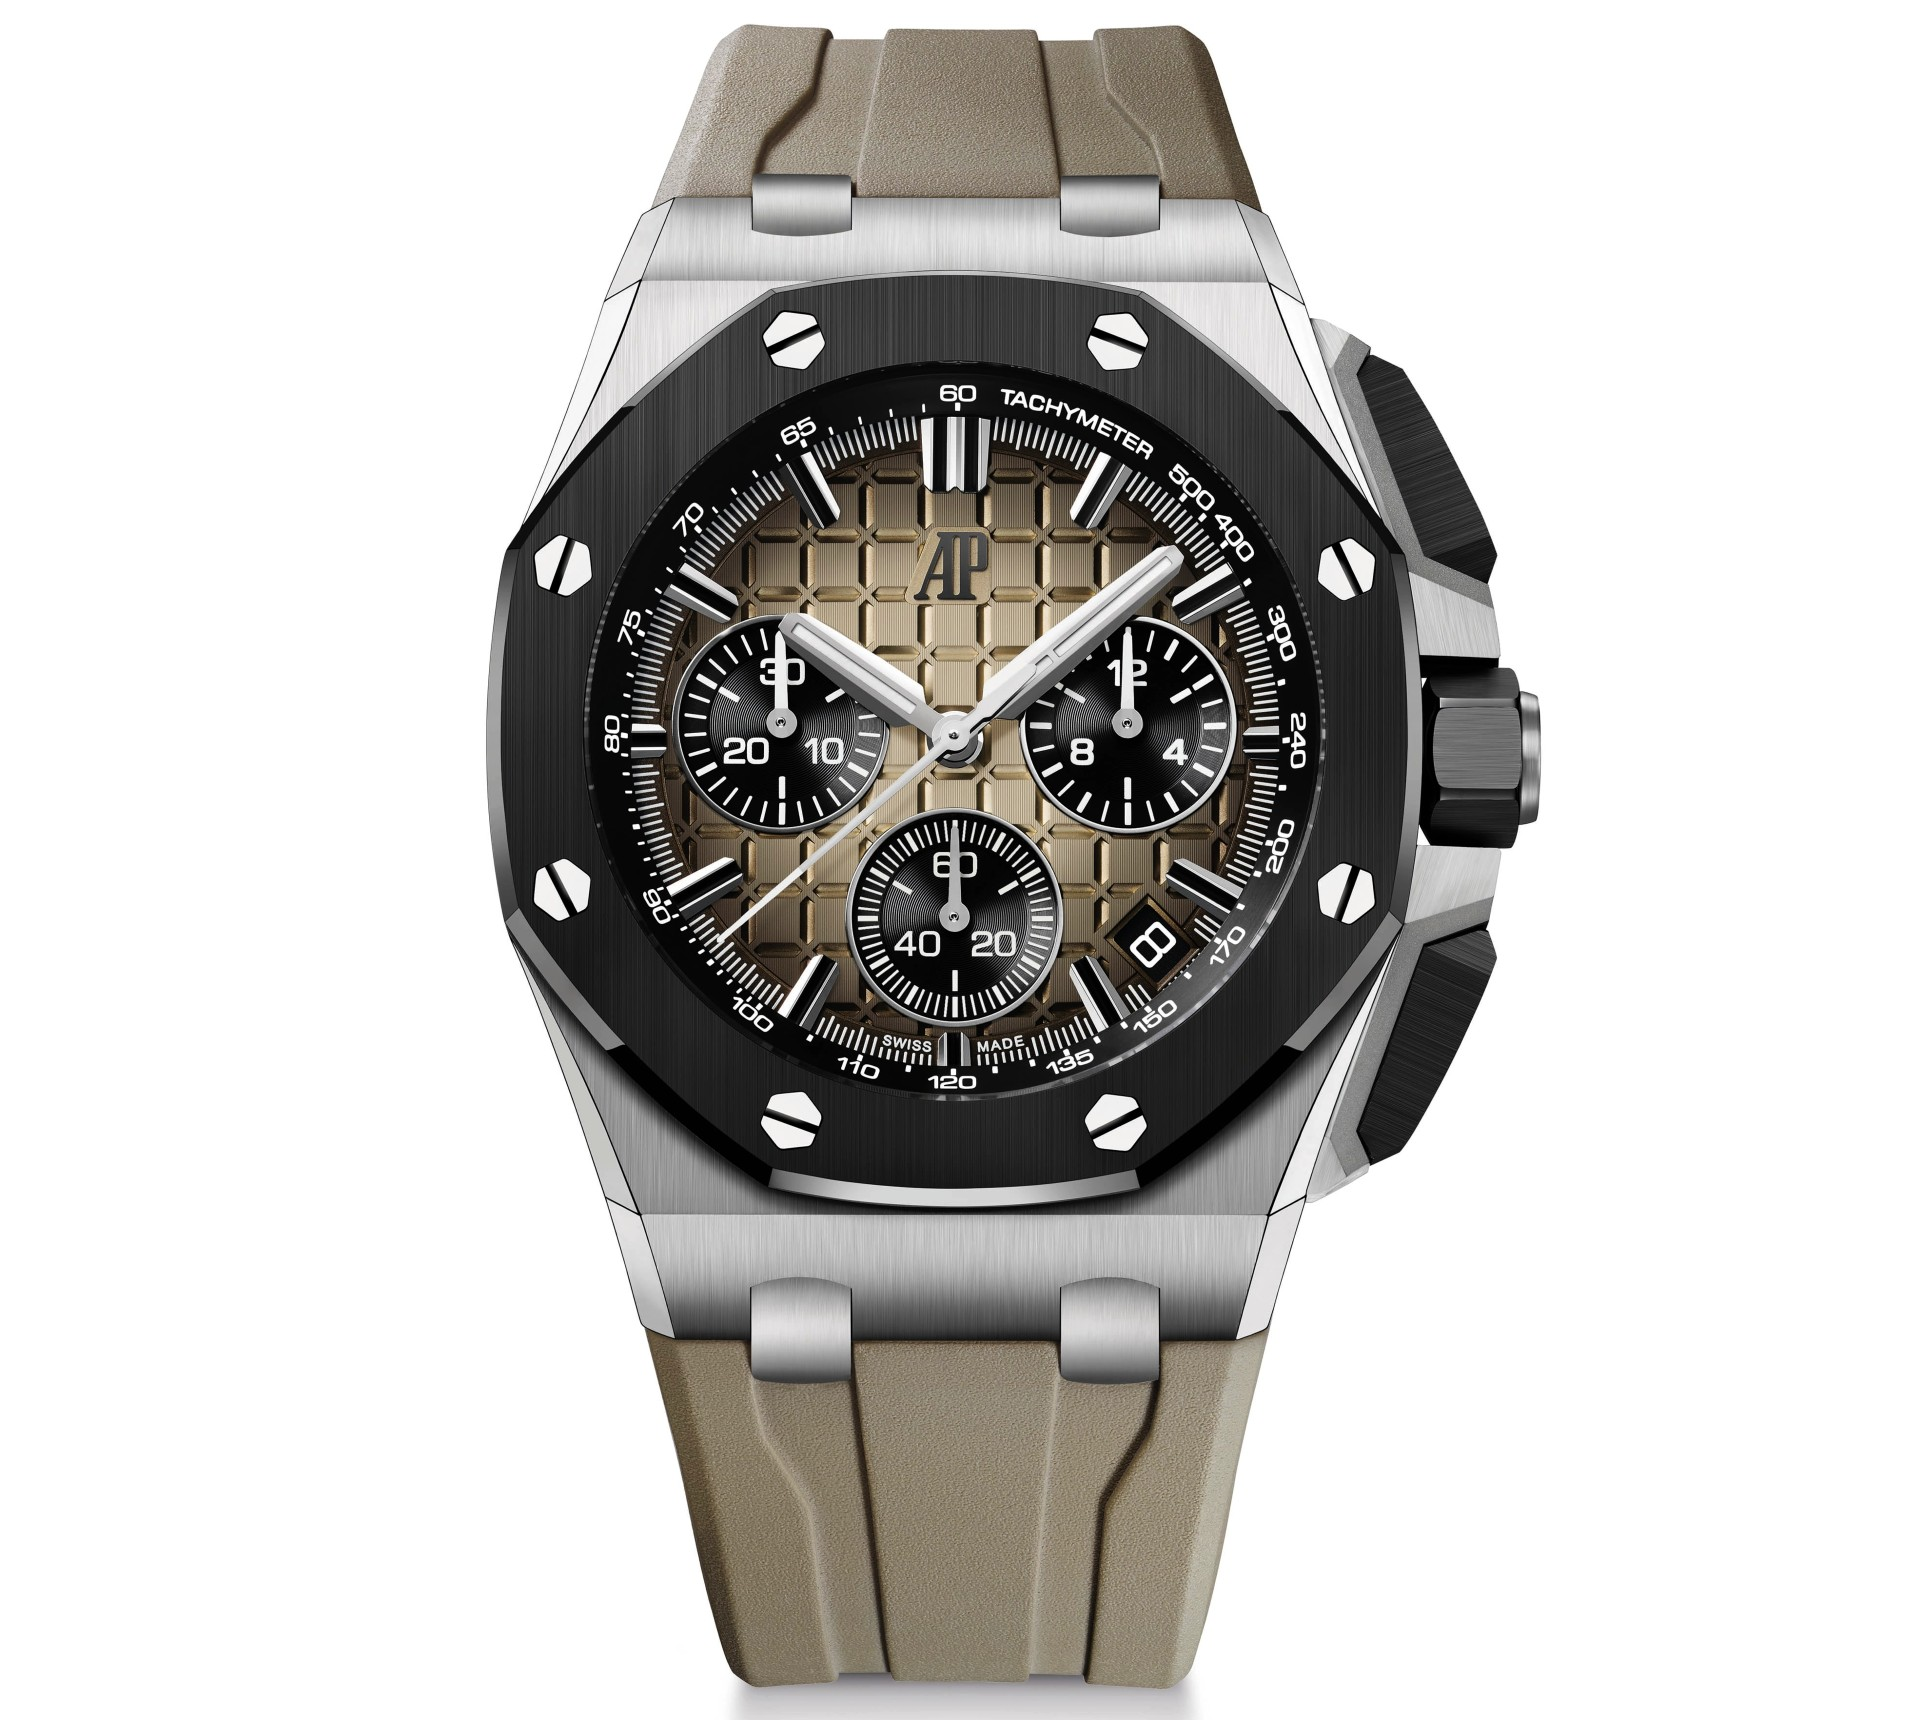 43mm Royal Oak Offshore in stainless steel with smoked light brown dial 1